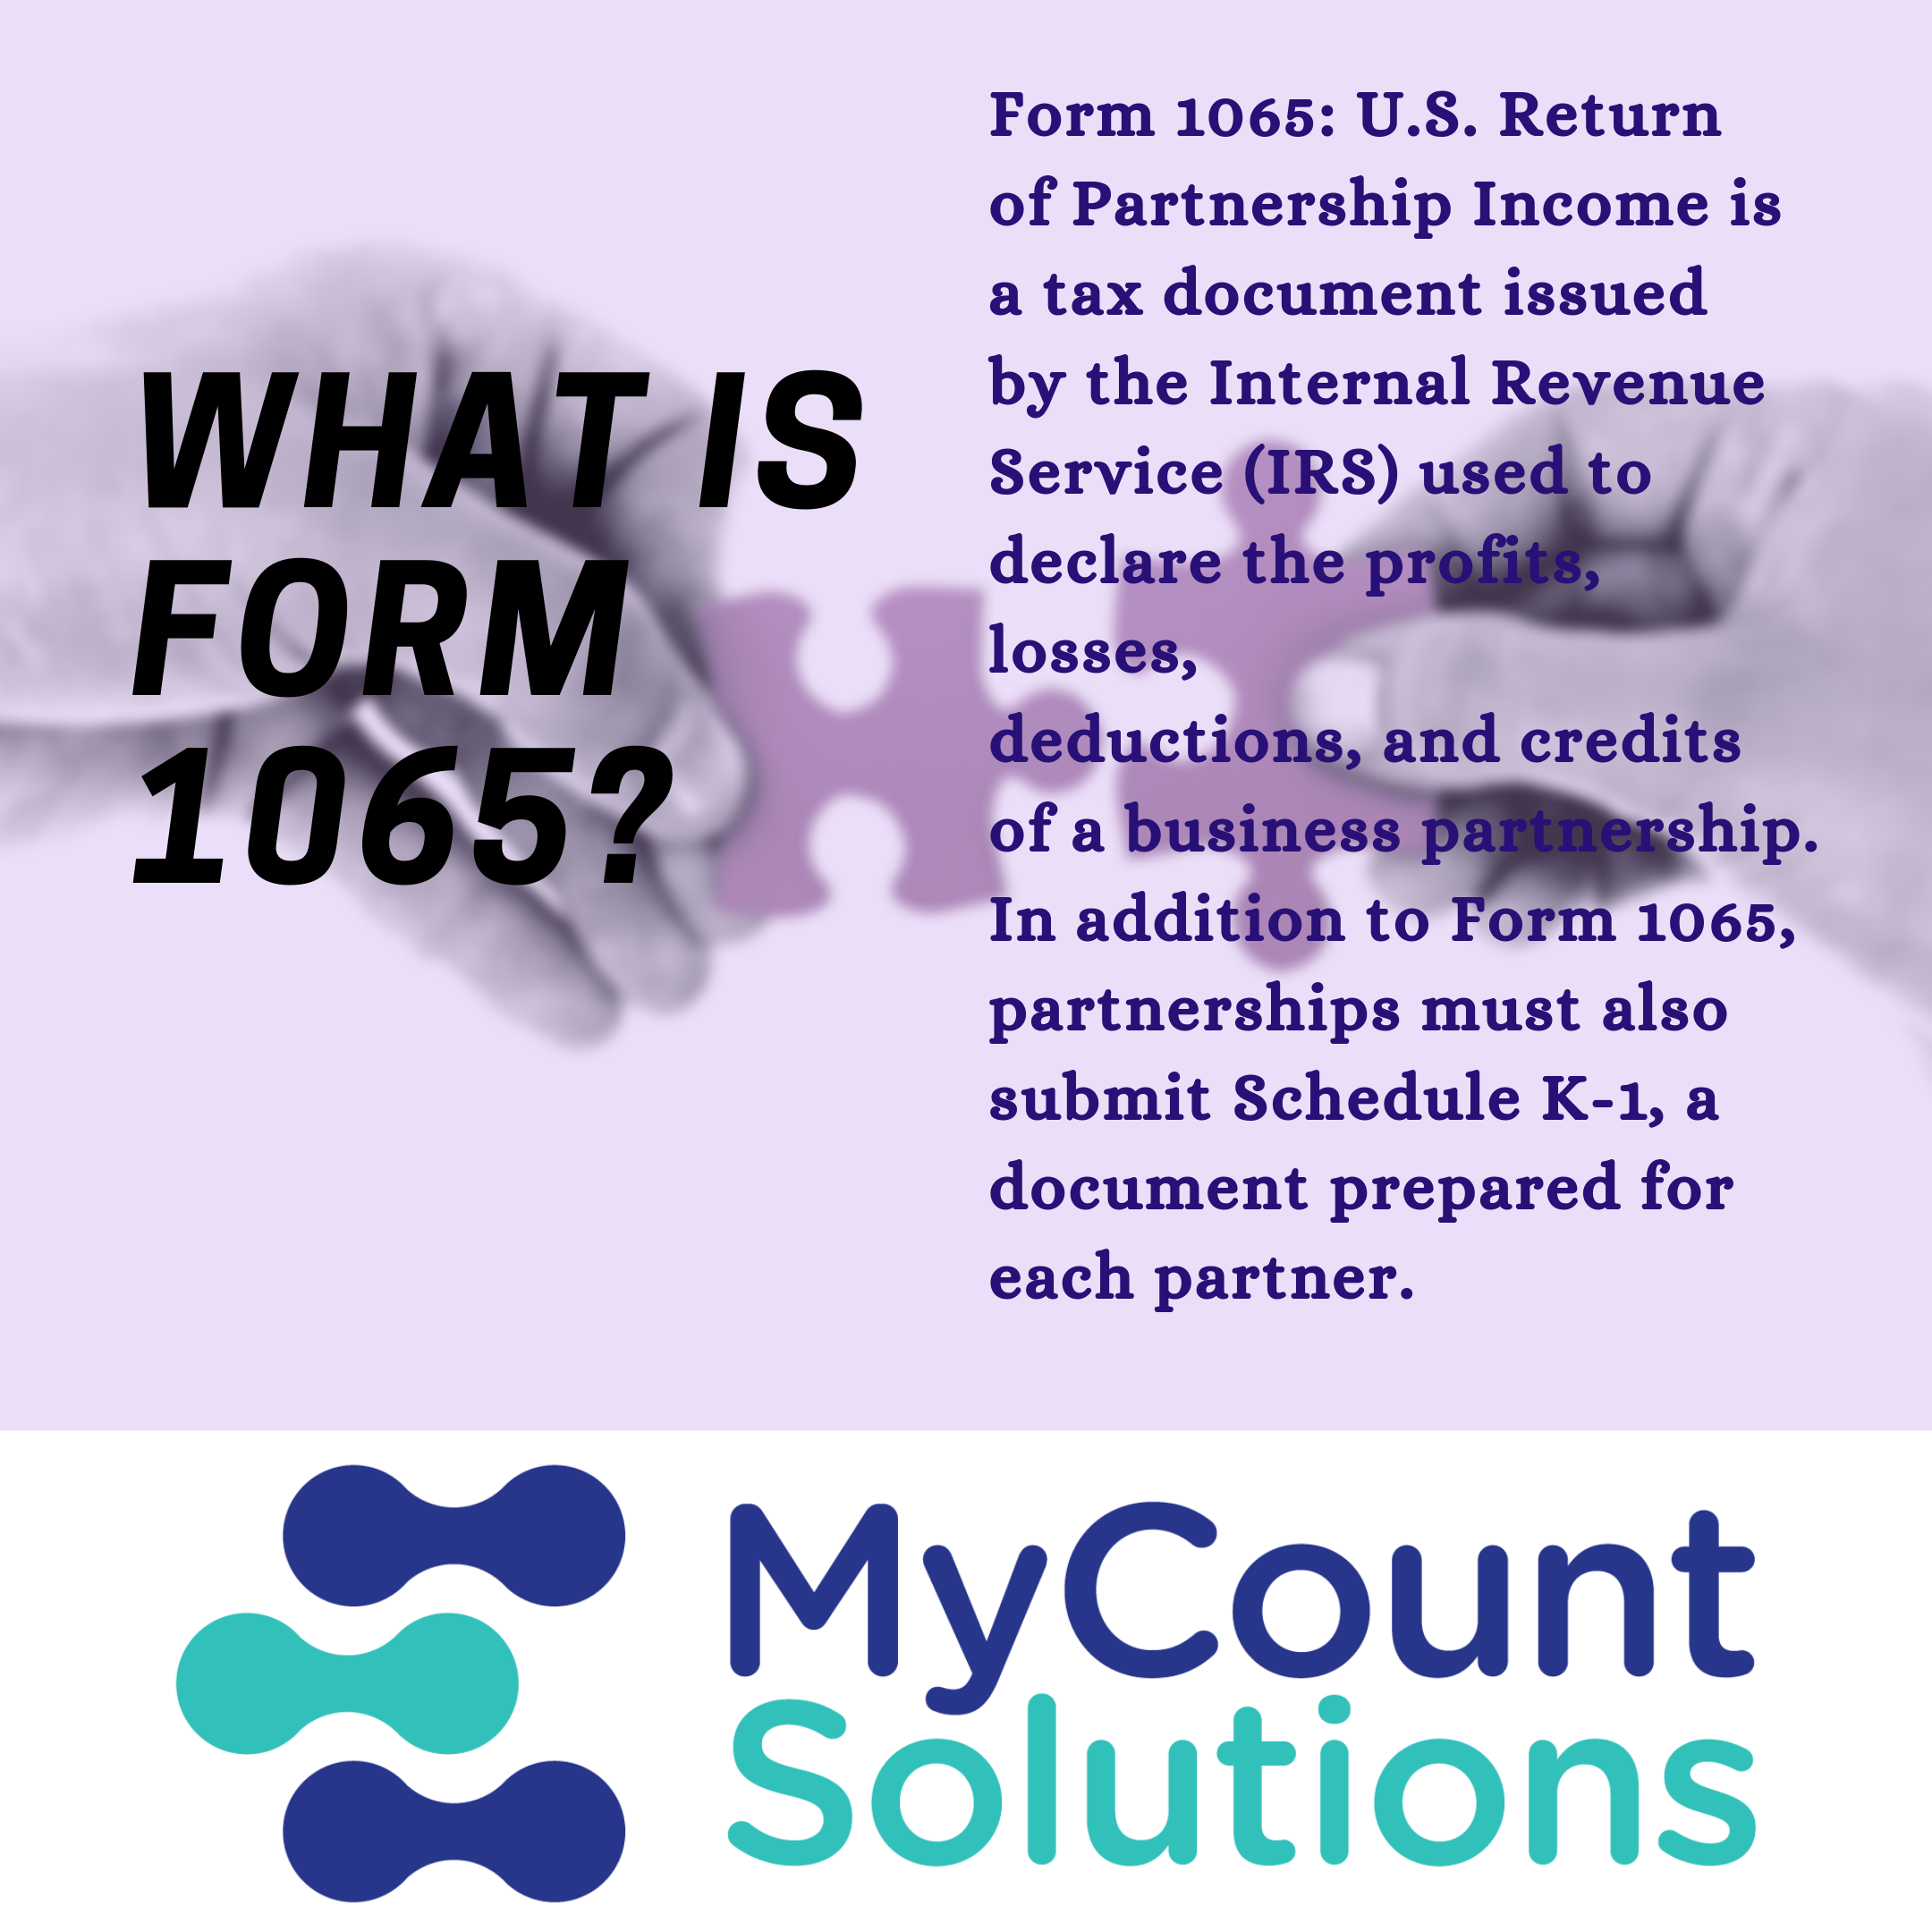 form 1065 deductions  Pin by My Count Solutions on Form 13 | Small business ...